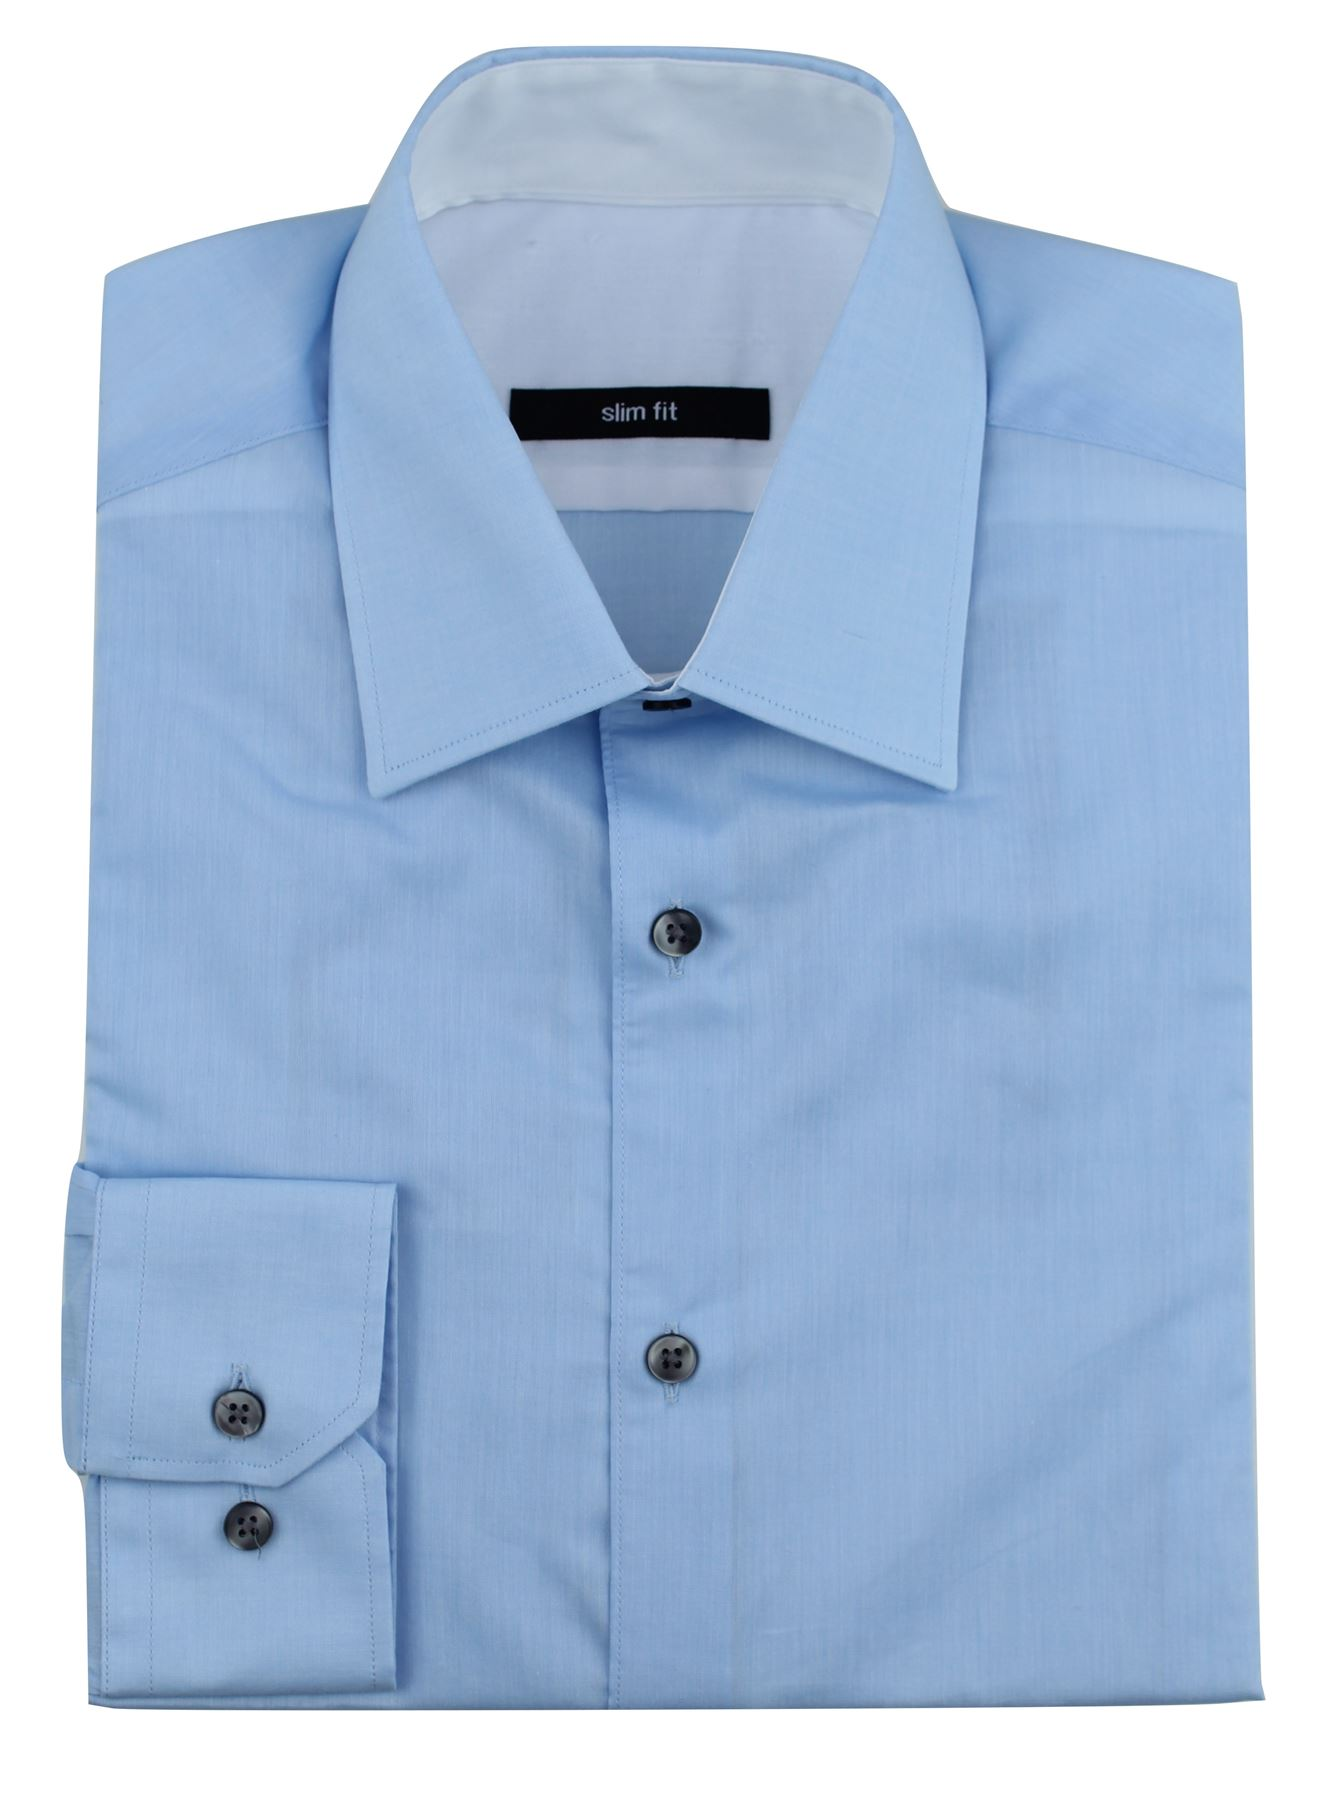 Athletic Fit Dress Shirts